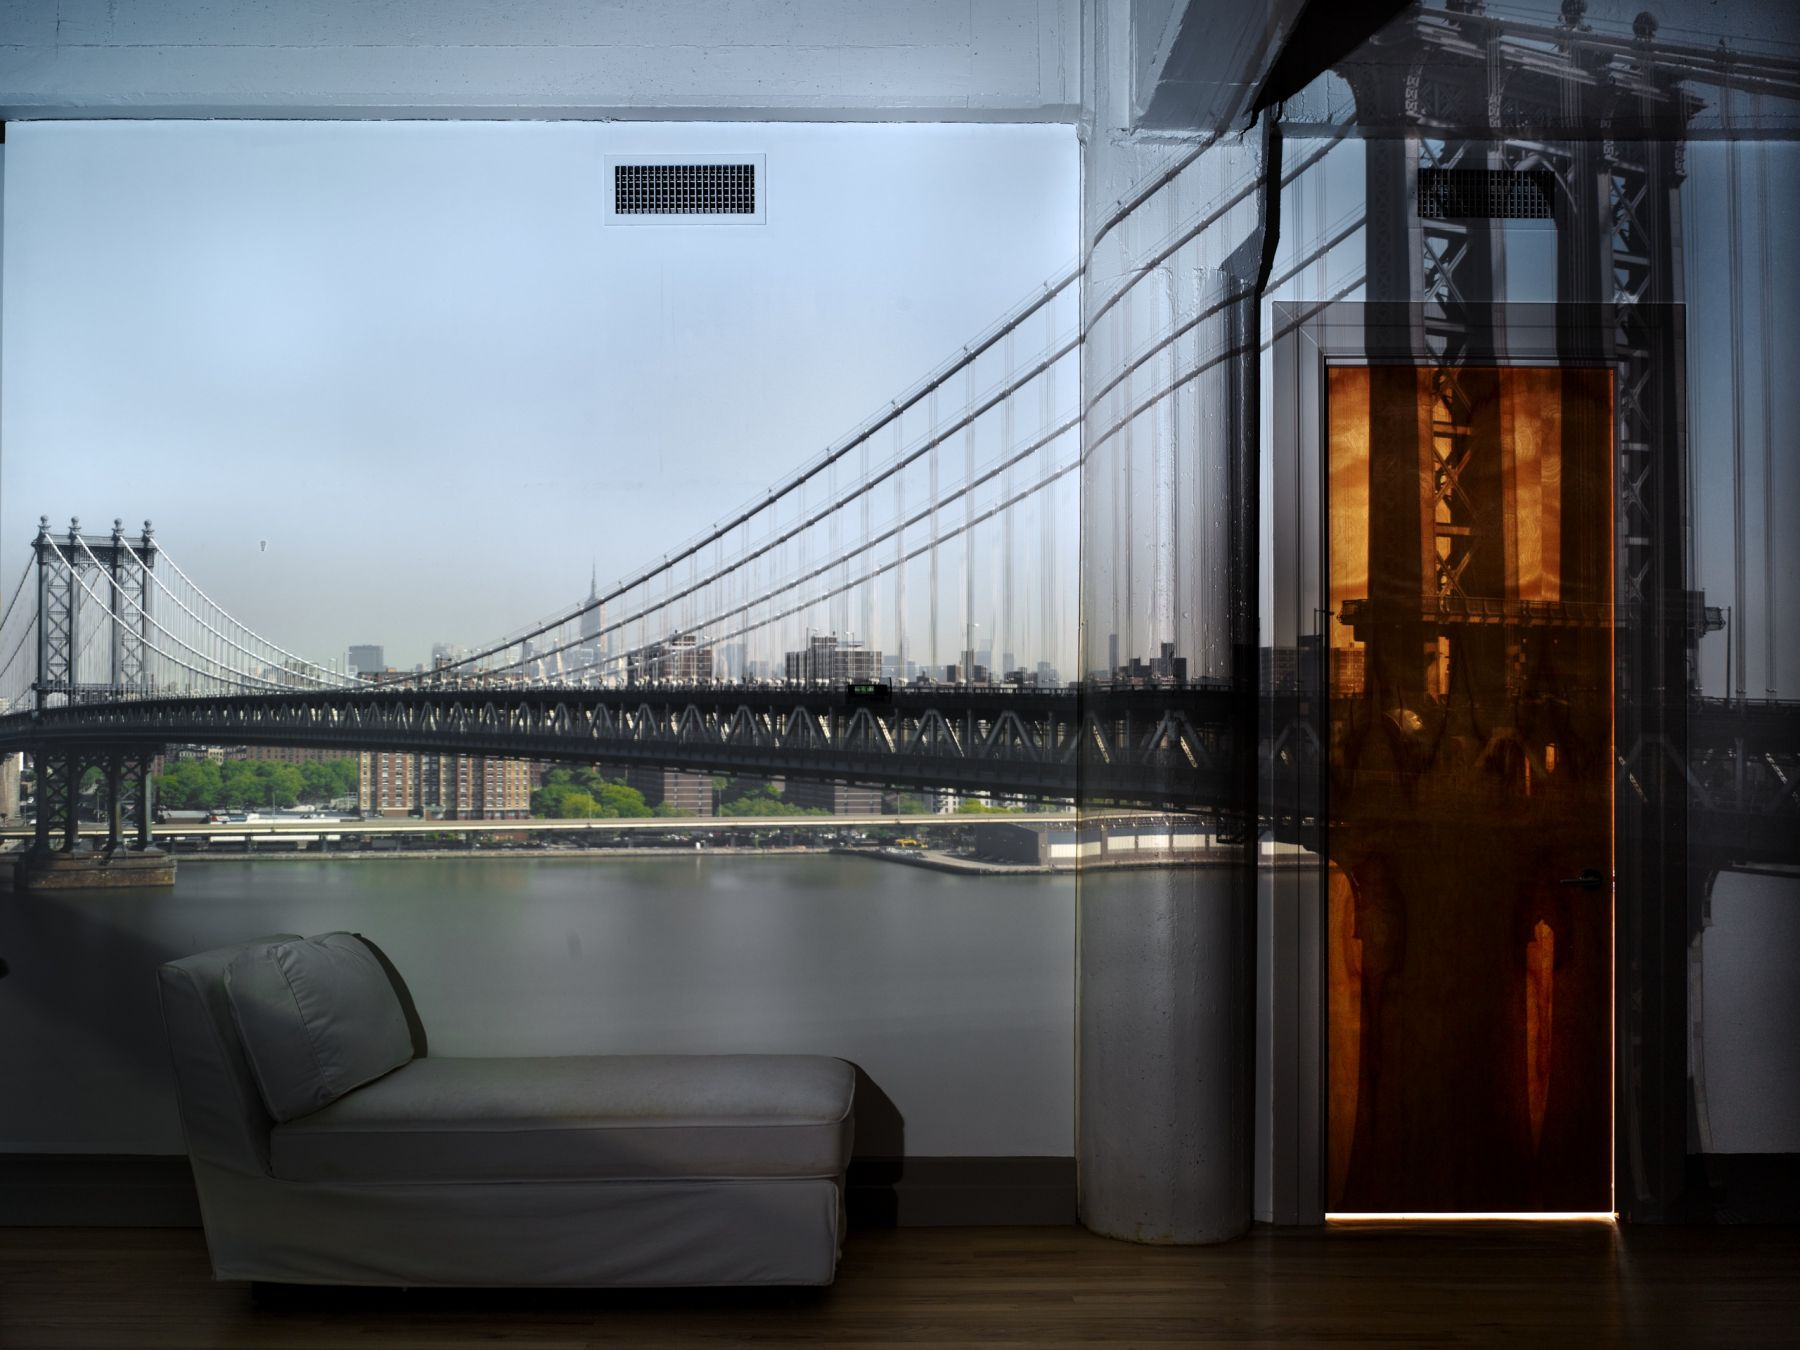 Abelardo Morell, Camera Obscura: View of the Manhattan Bridge, April 30th, Morning, 2010